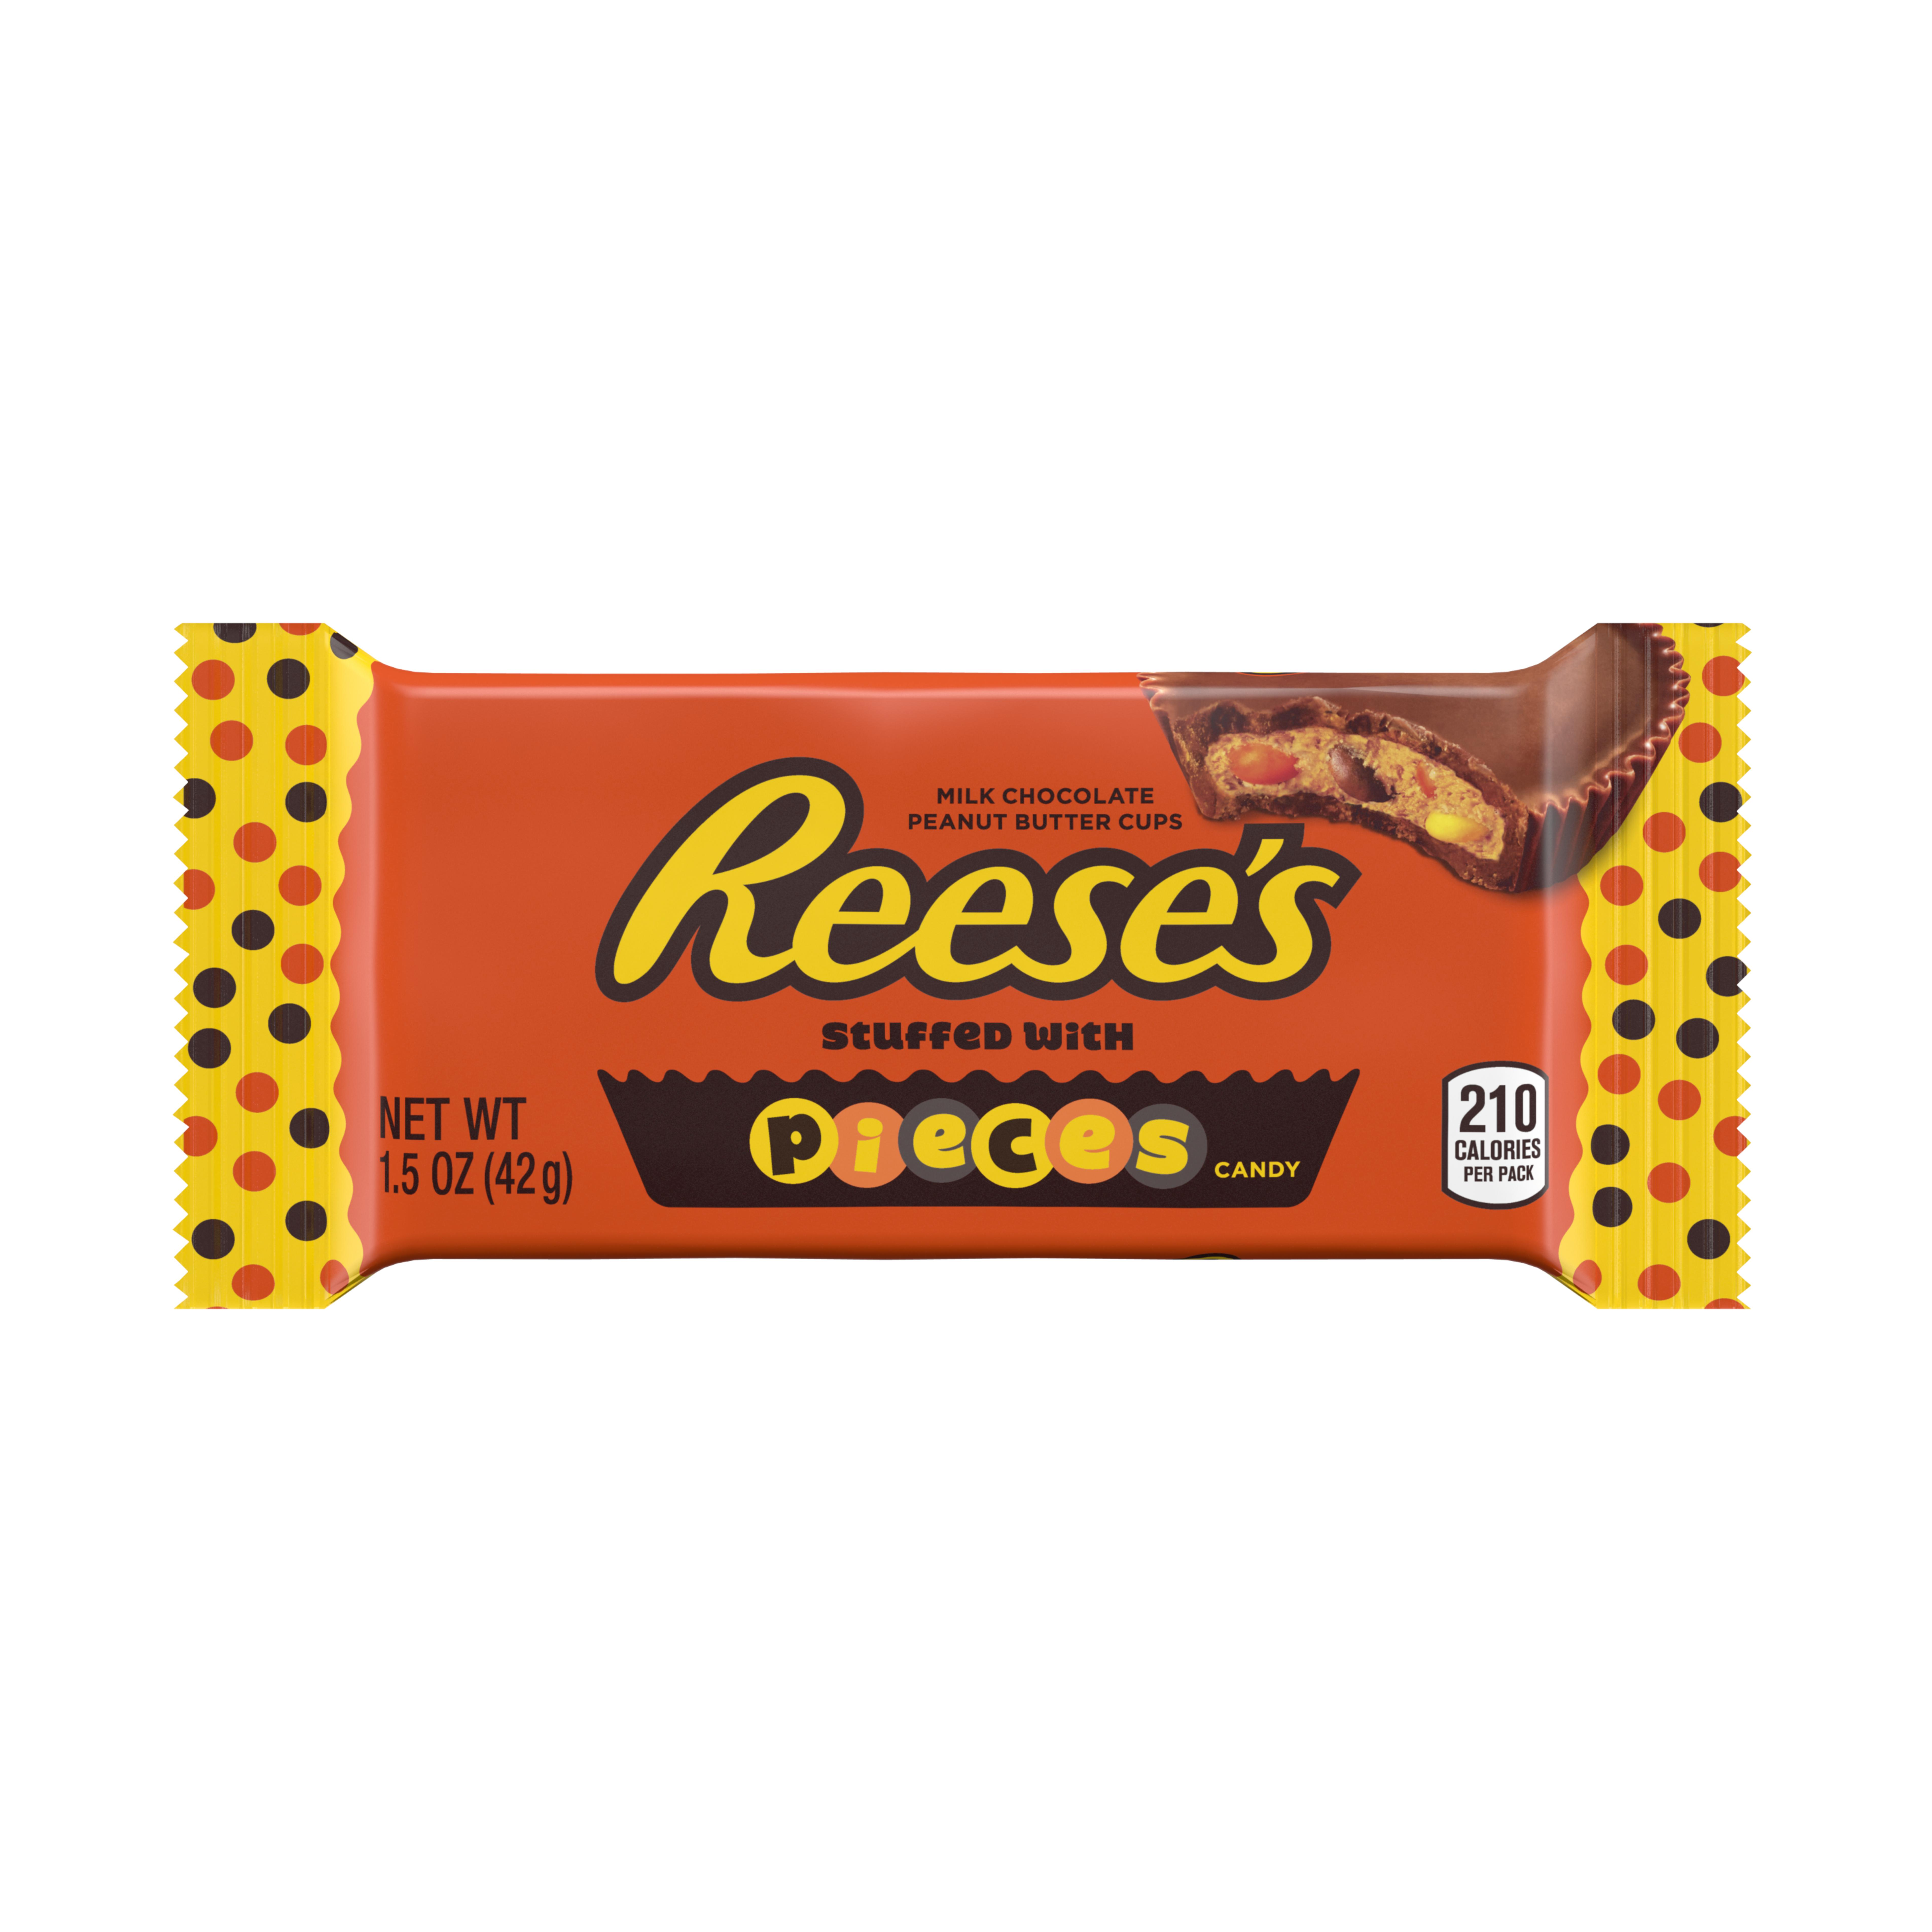 Reese's, Peanut Butter Cups with Pieces Milk Chocolate Candy, 1.5 Oz